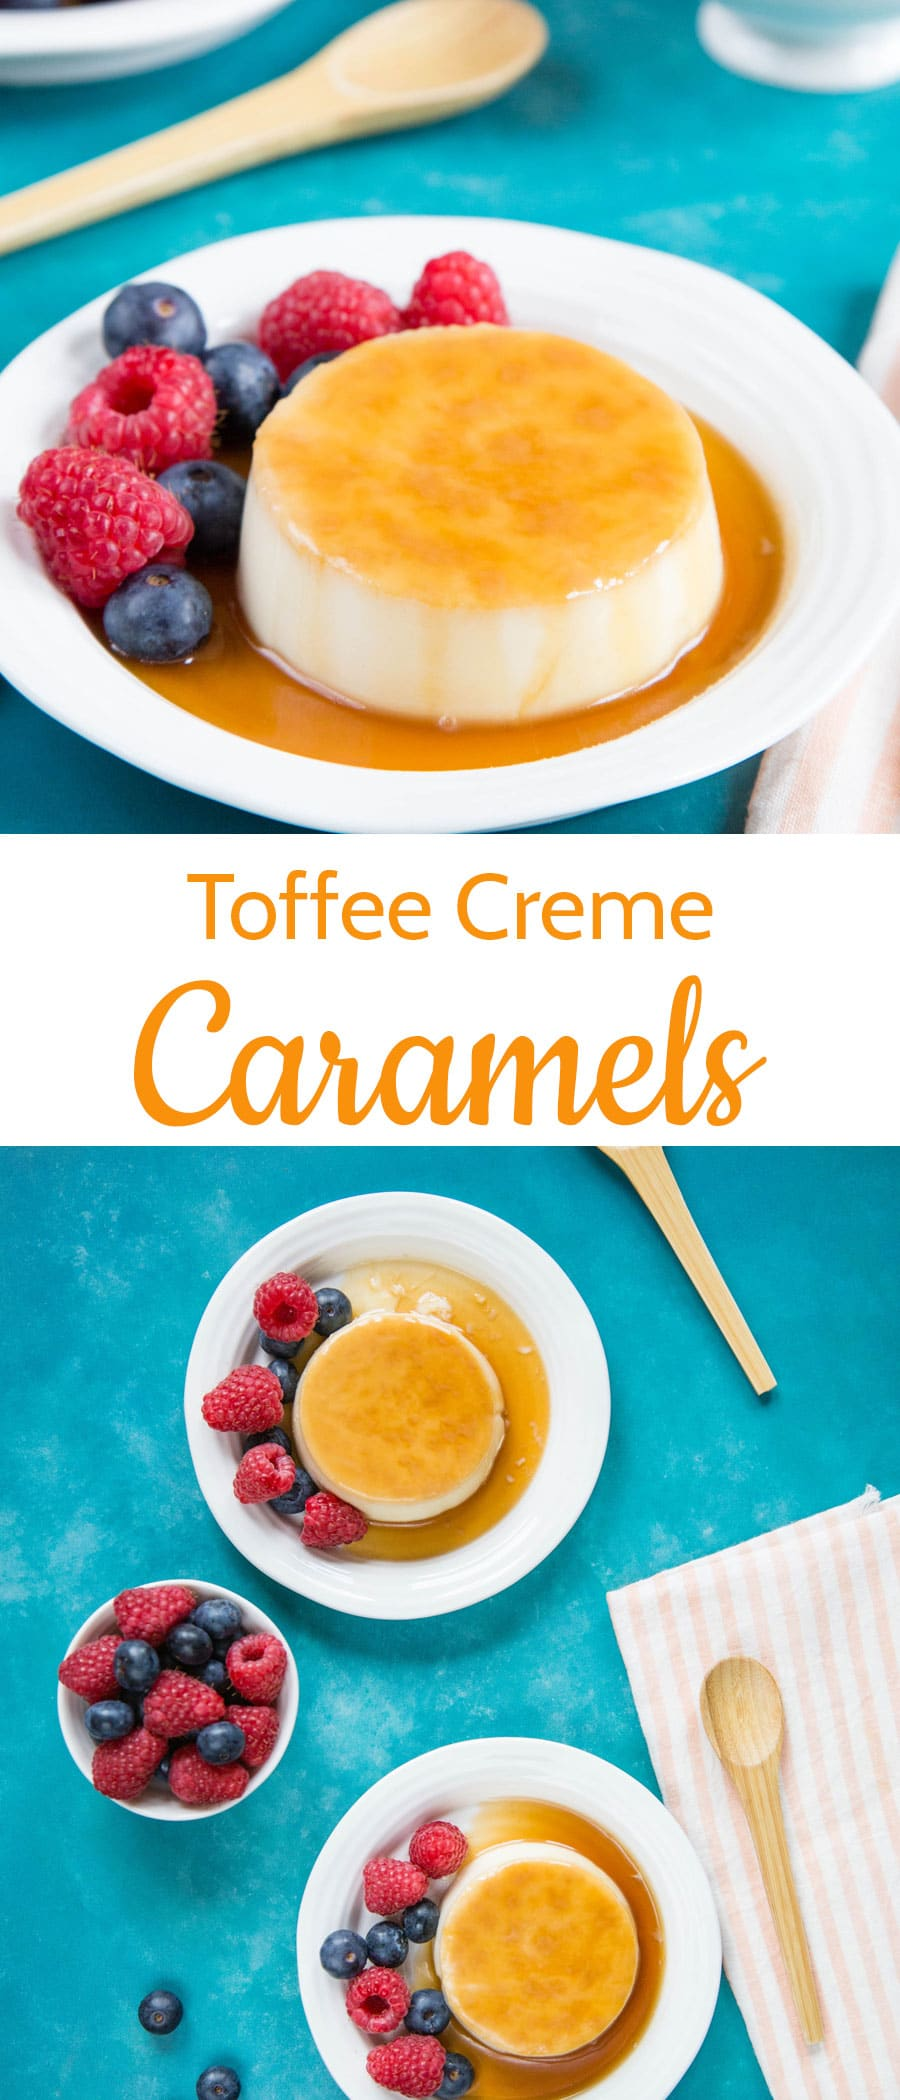 Toffee creme caramel desserts are easy to prepare ahead, light and delicious.